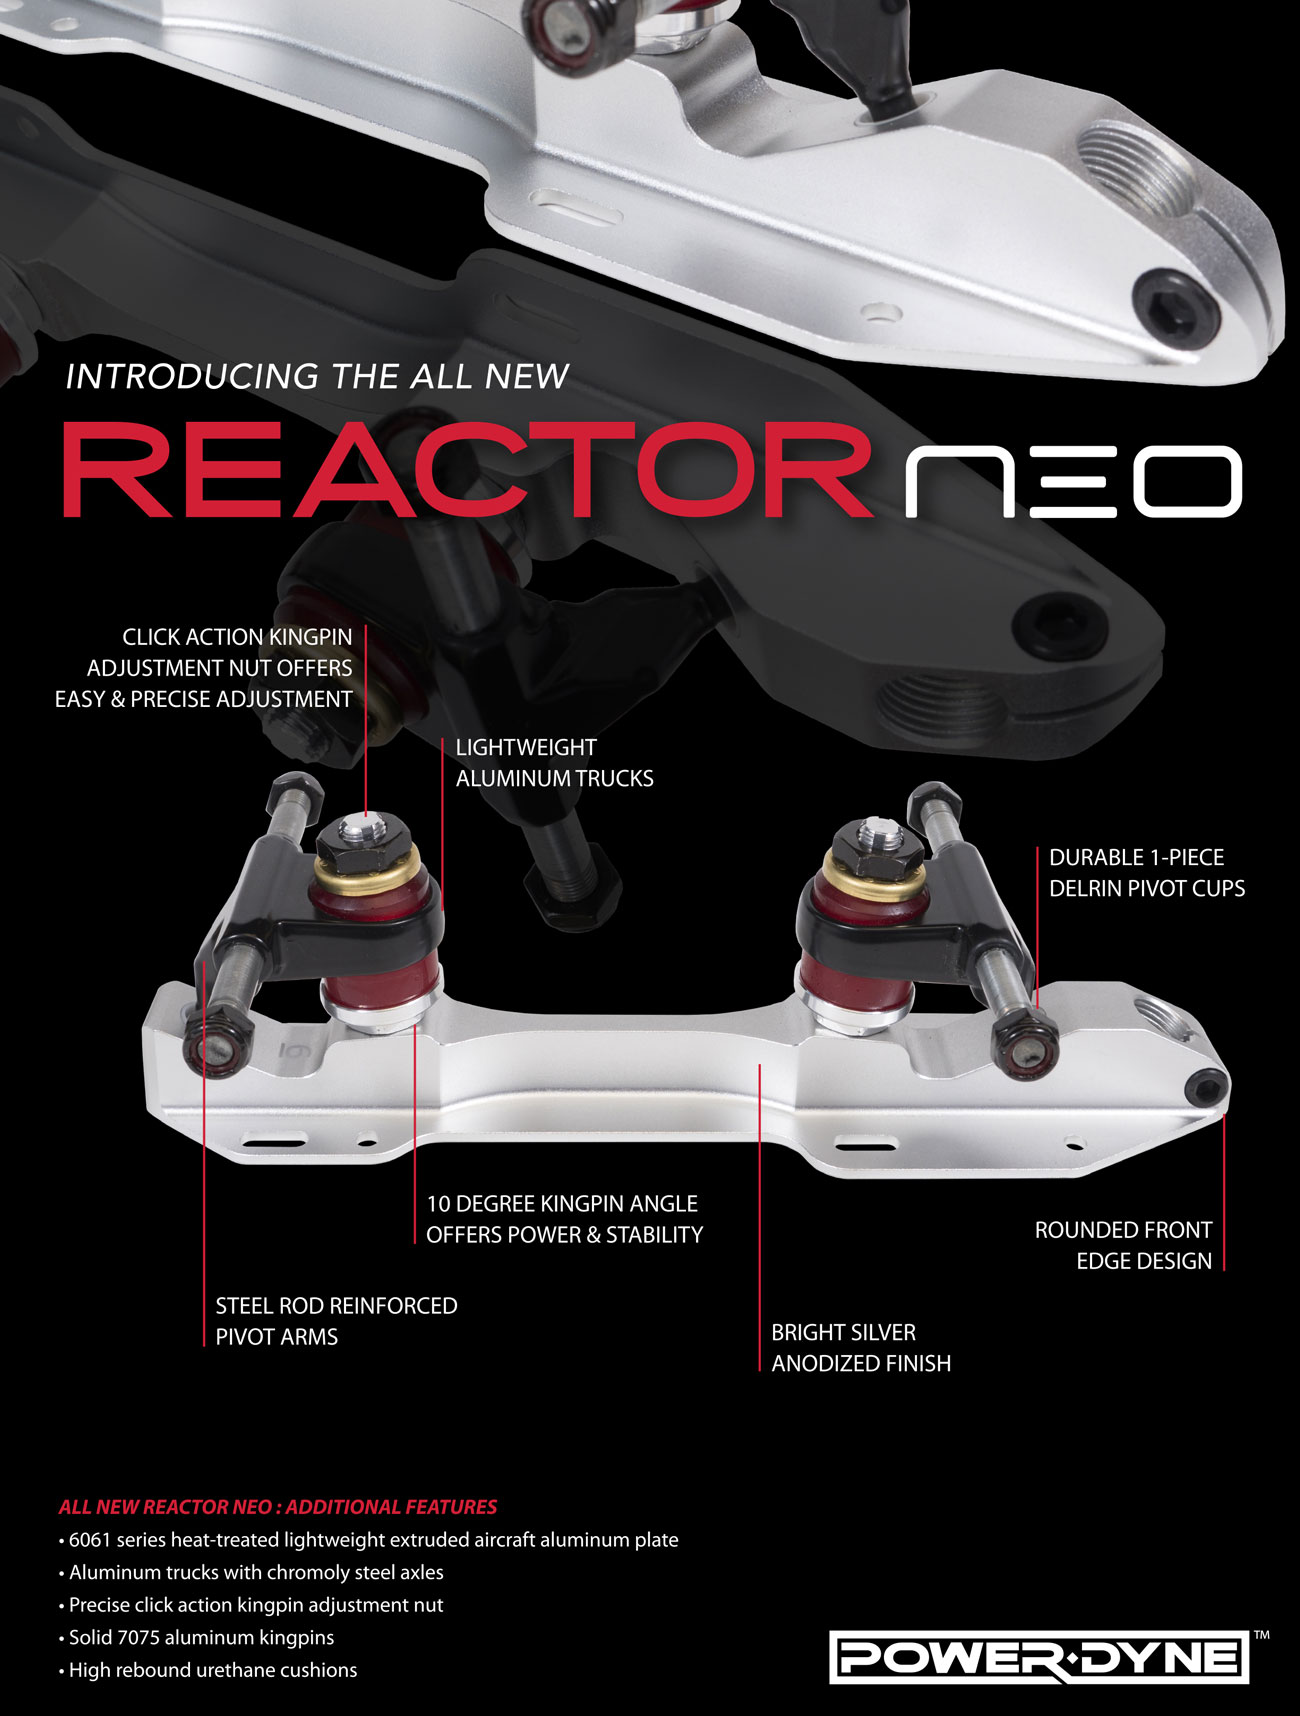 powerdyne-reactor-neo-info-sheet.jpg